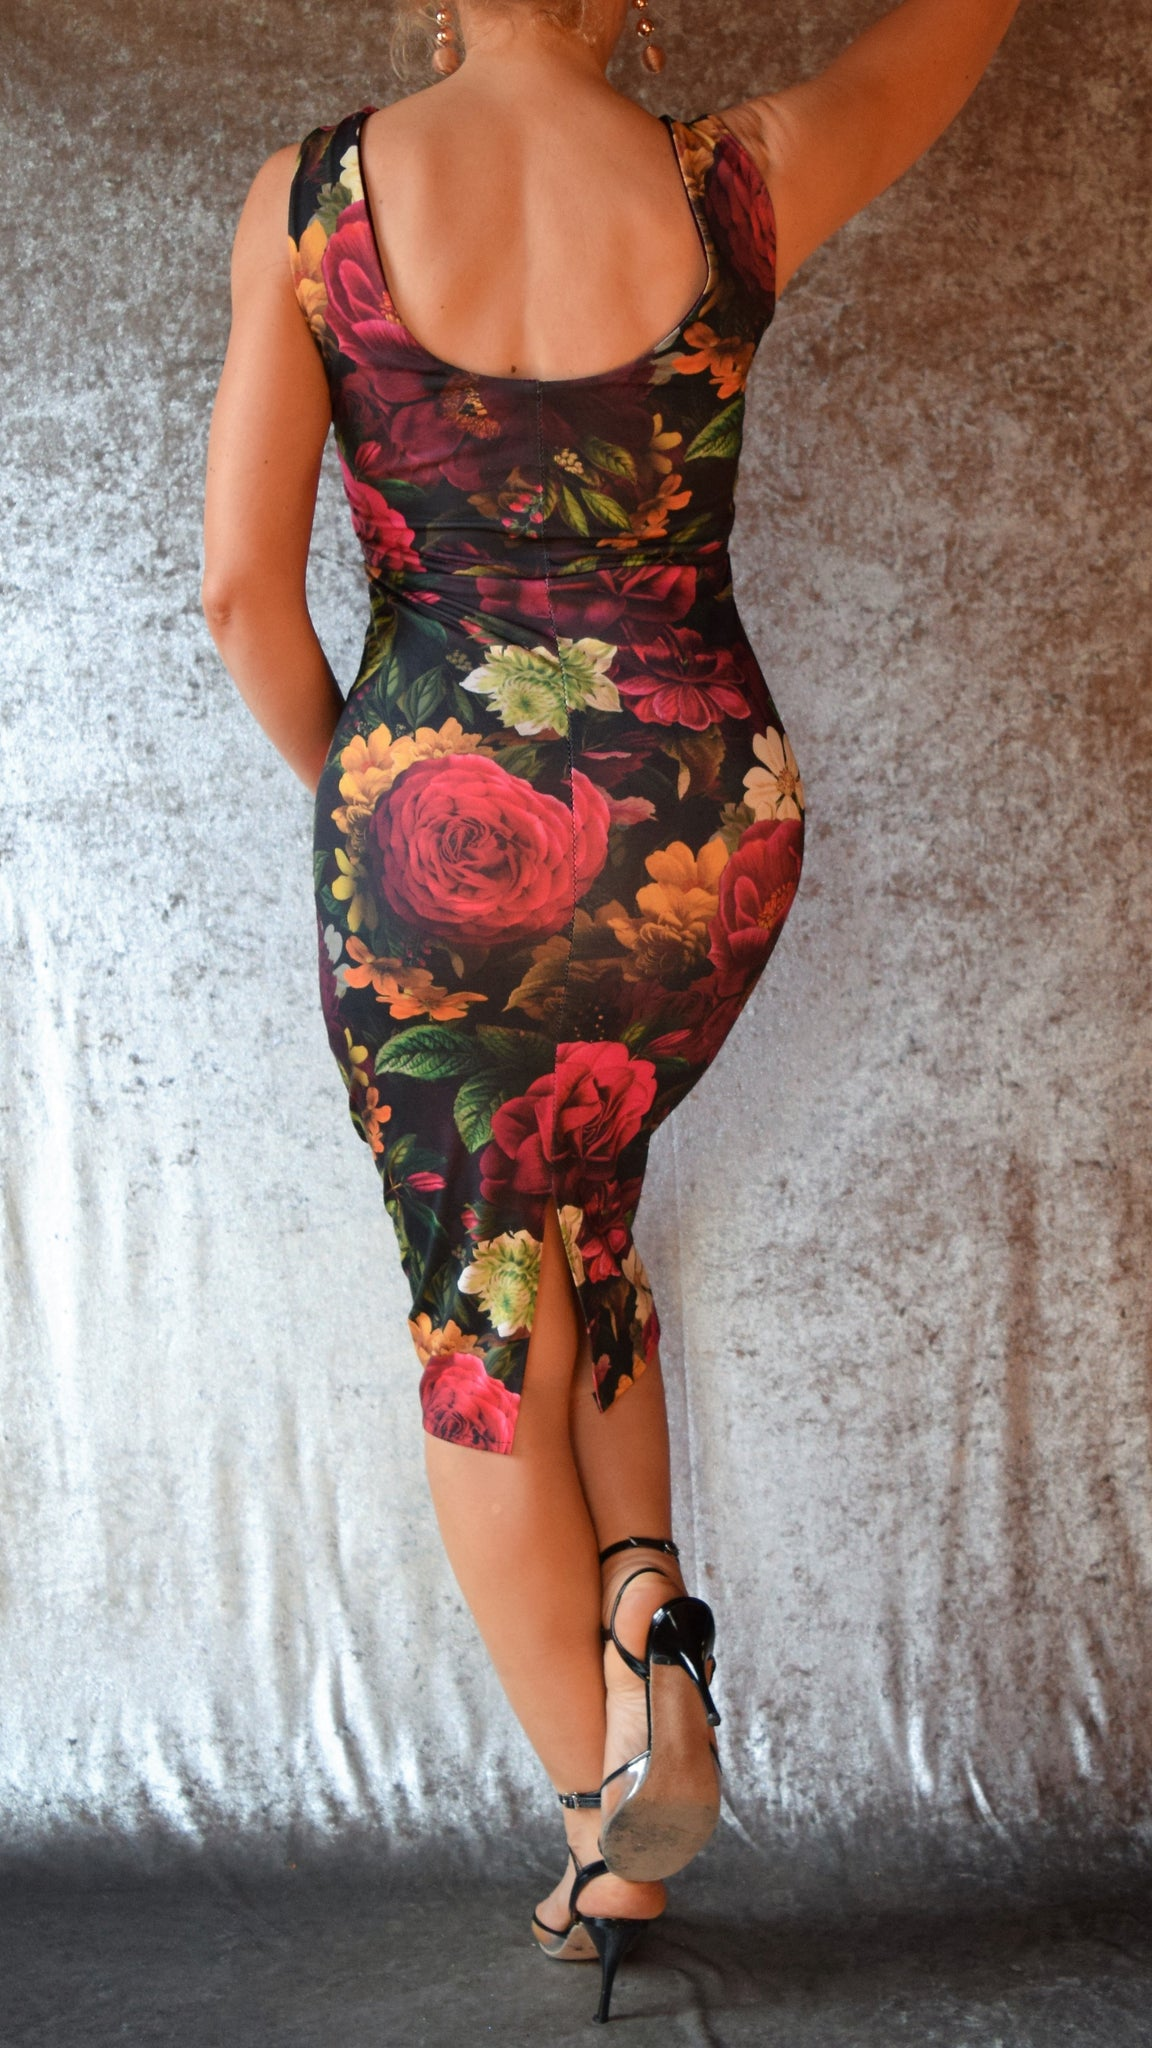 Mystic Night Moody Floral High Neckline Wiggle Dress - Choose Your Size and Color